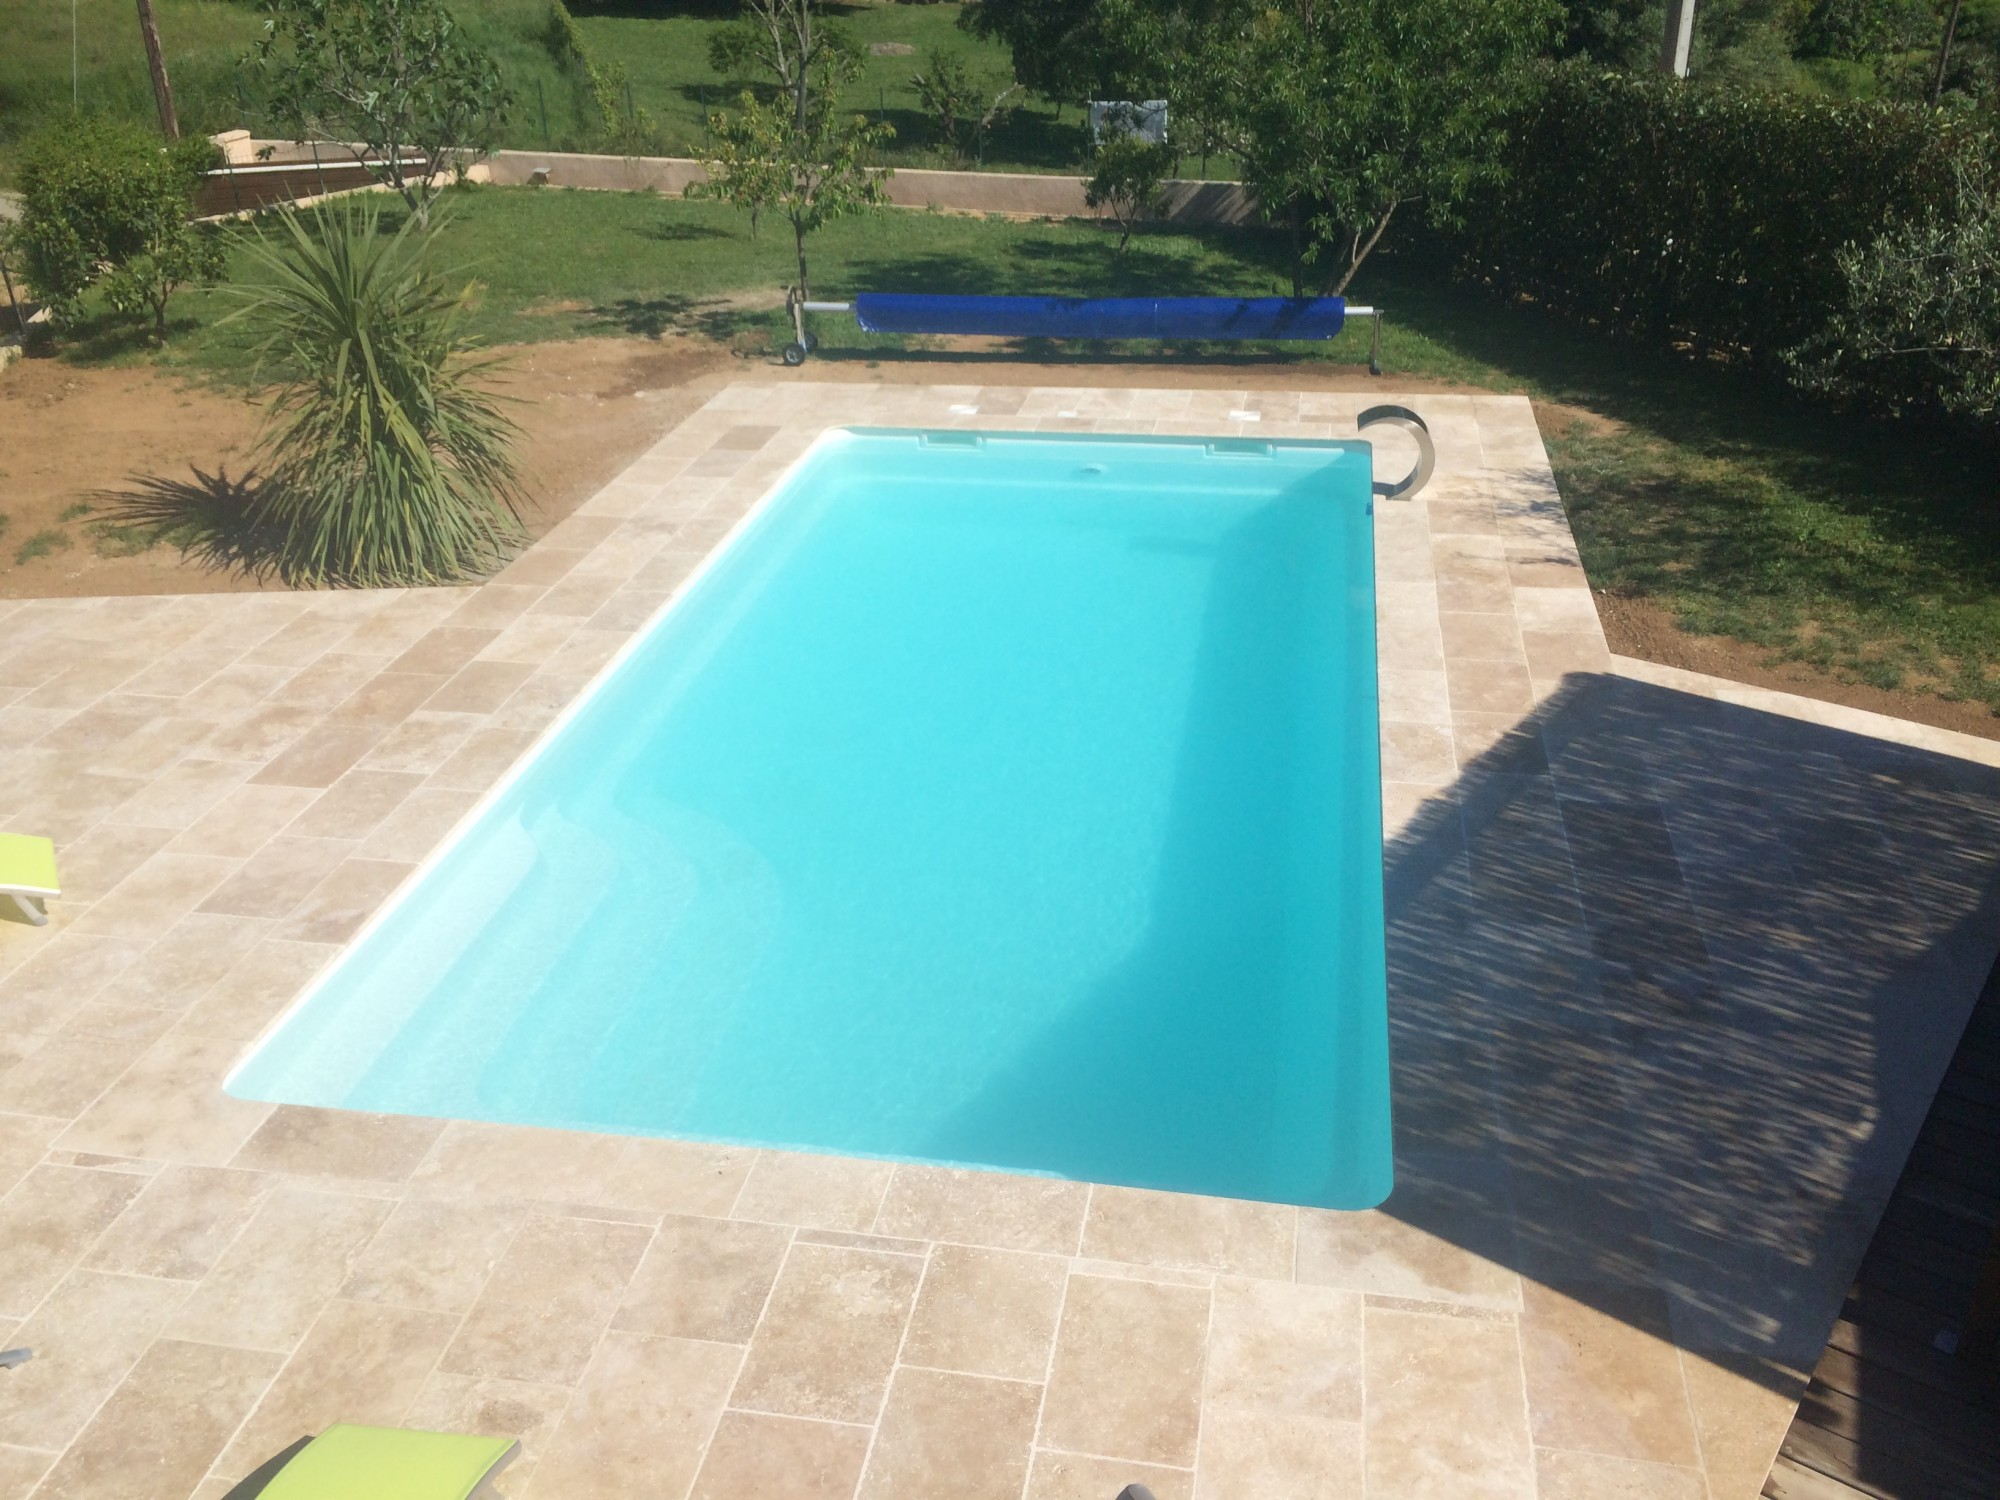 Piscine coque 9 4 rw51 jornalagora for Piscine coque polyester avantages